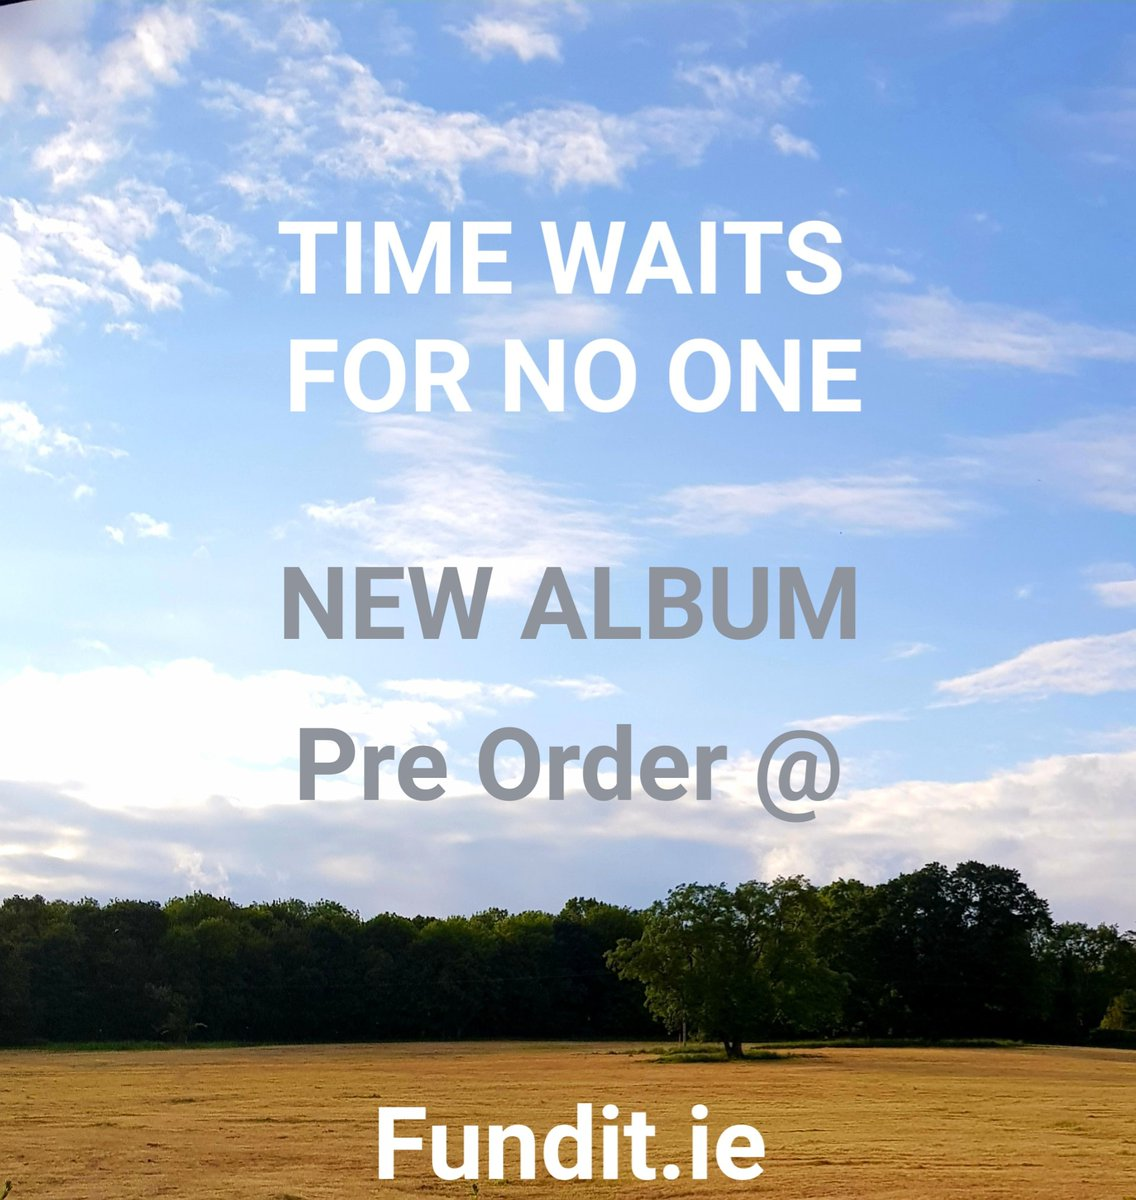 3 days into my @Fund_it campaign for my new album and we're already 17% funded. Your support is a huge help. If you would like to support me you too can preorder a copy of the album at the link below and many thanks indeed. 😊😊 #crowdfunding #NewMusic https://t.co/j2p0Pg3Vua https://t.co/CG2ajFXJqA